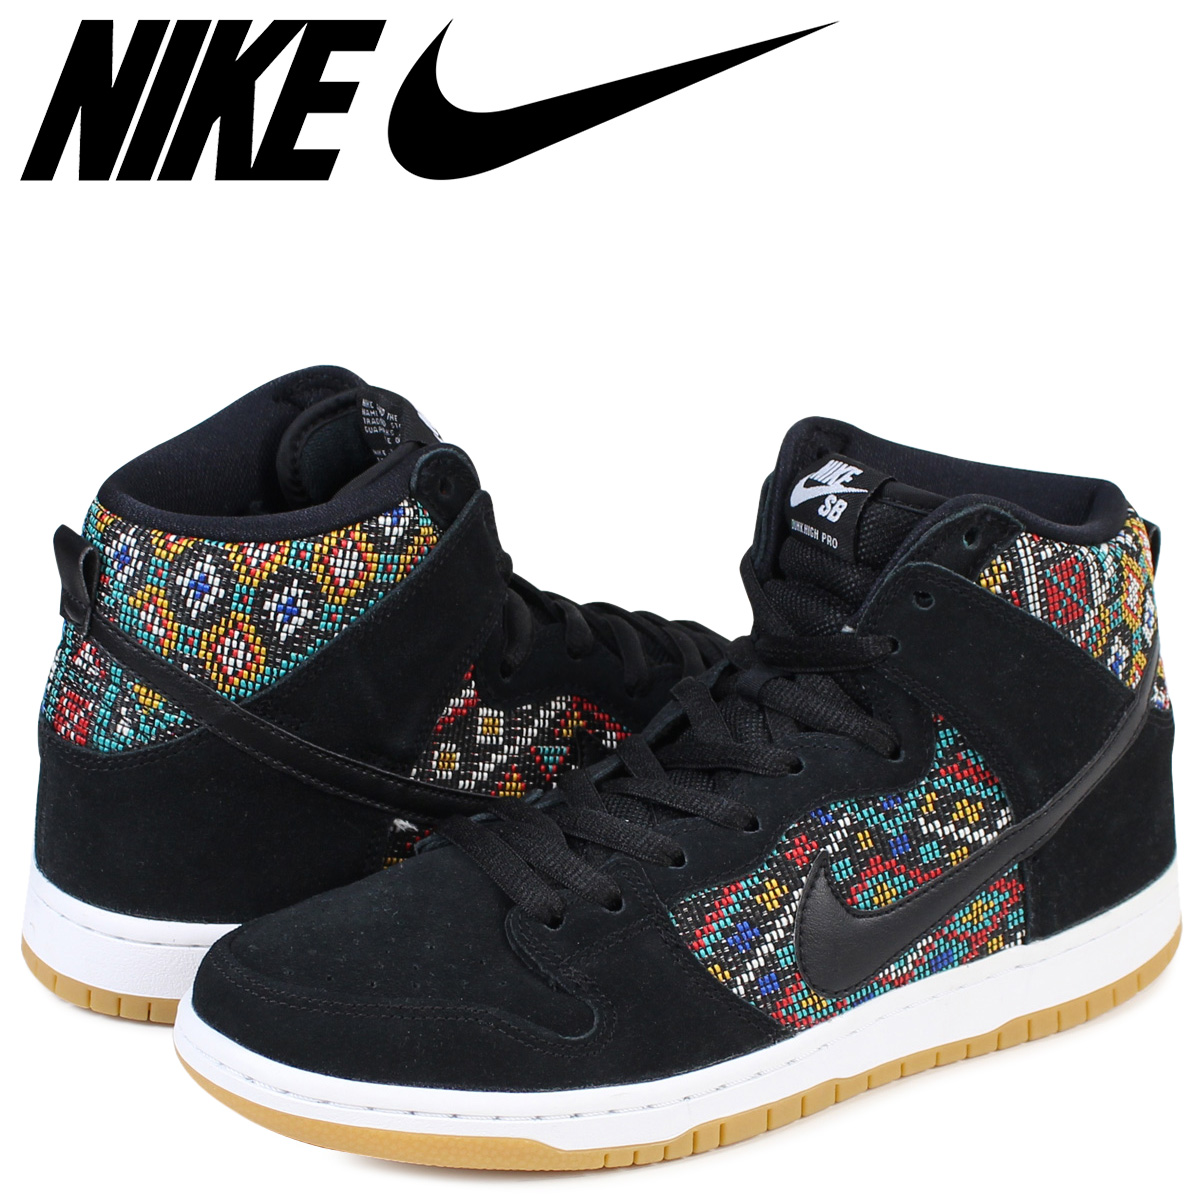 9ce4aa206c7d ... sweden nike sb dunk high premium seat cover nike dunk high sneakers  313171 030 mens shoes